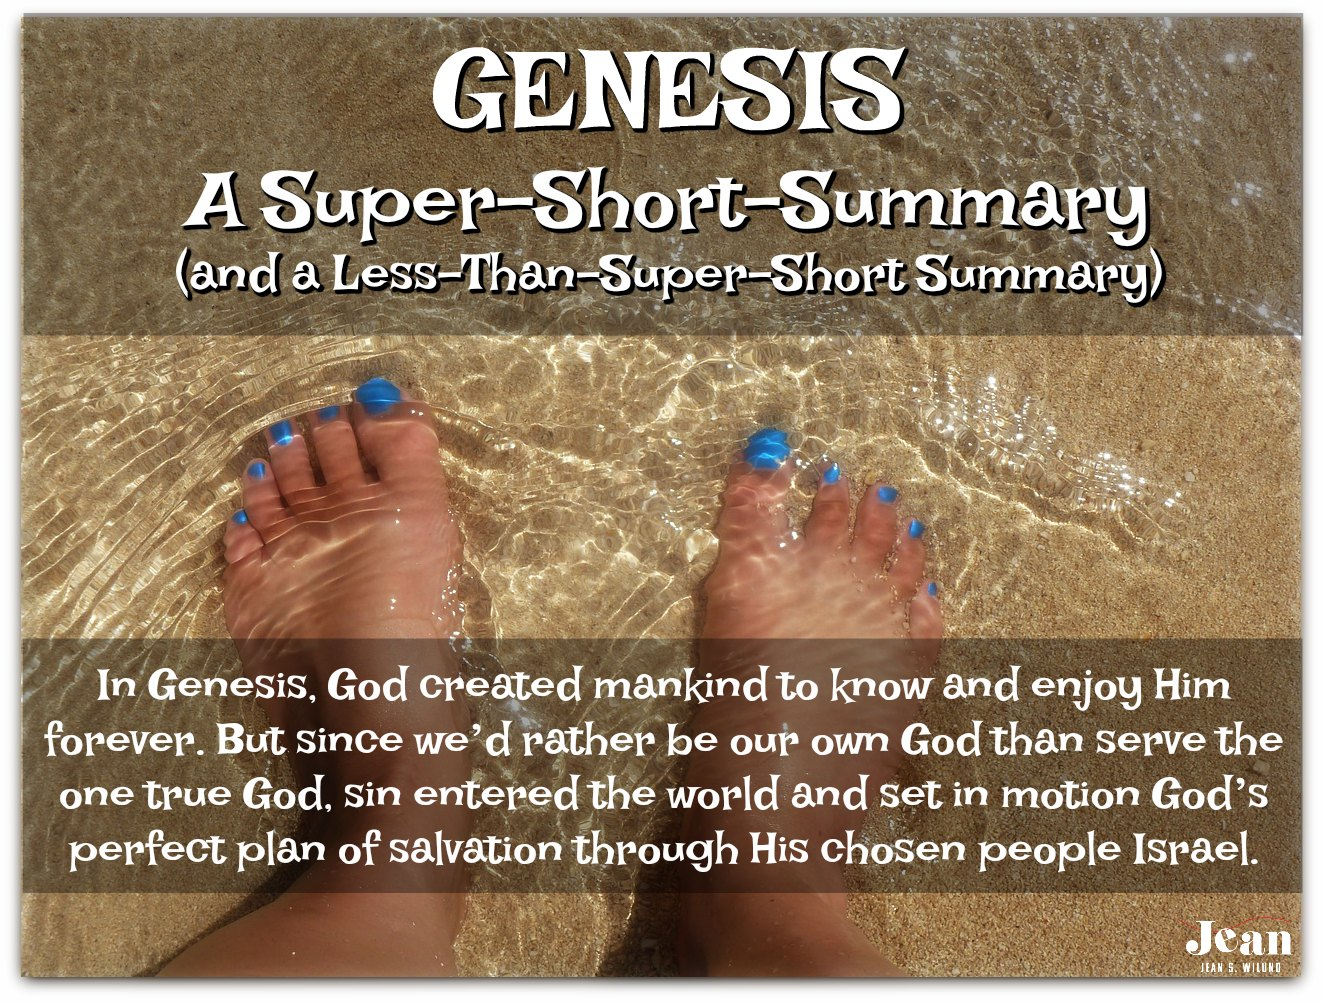 Genesis - A Super-Short Summary and Less-Than-Super-Short Summary (Welcome to the Bible series) via www.JeanWilund.com